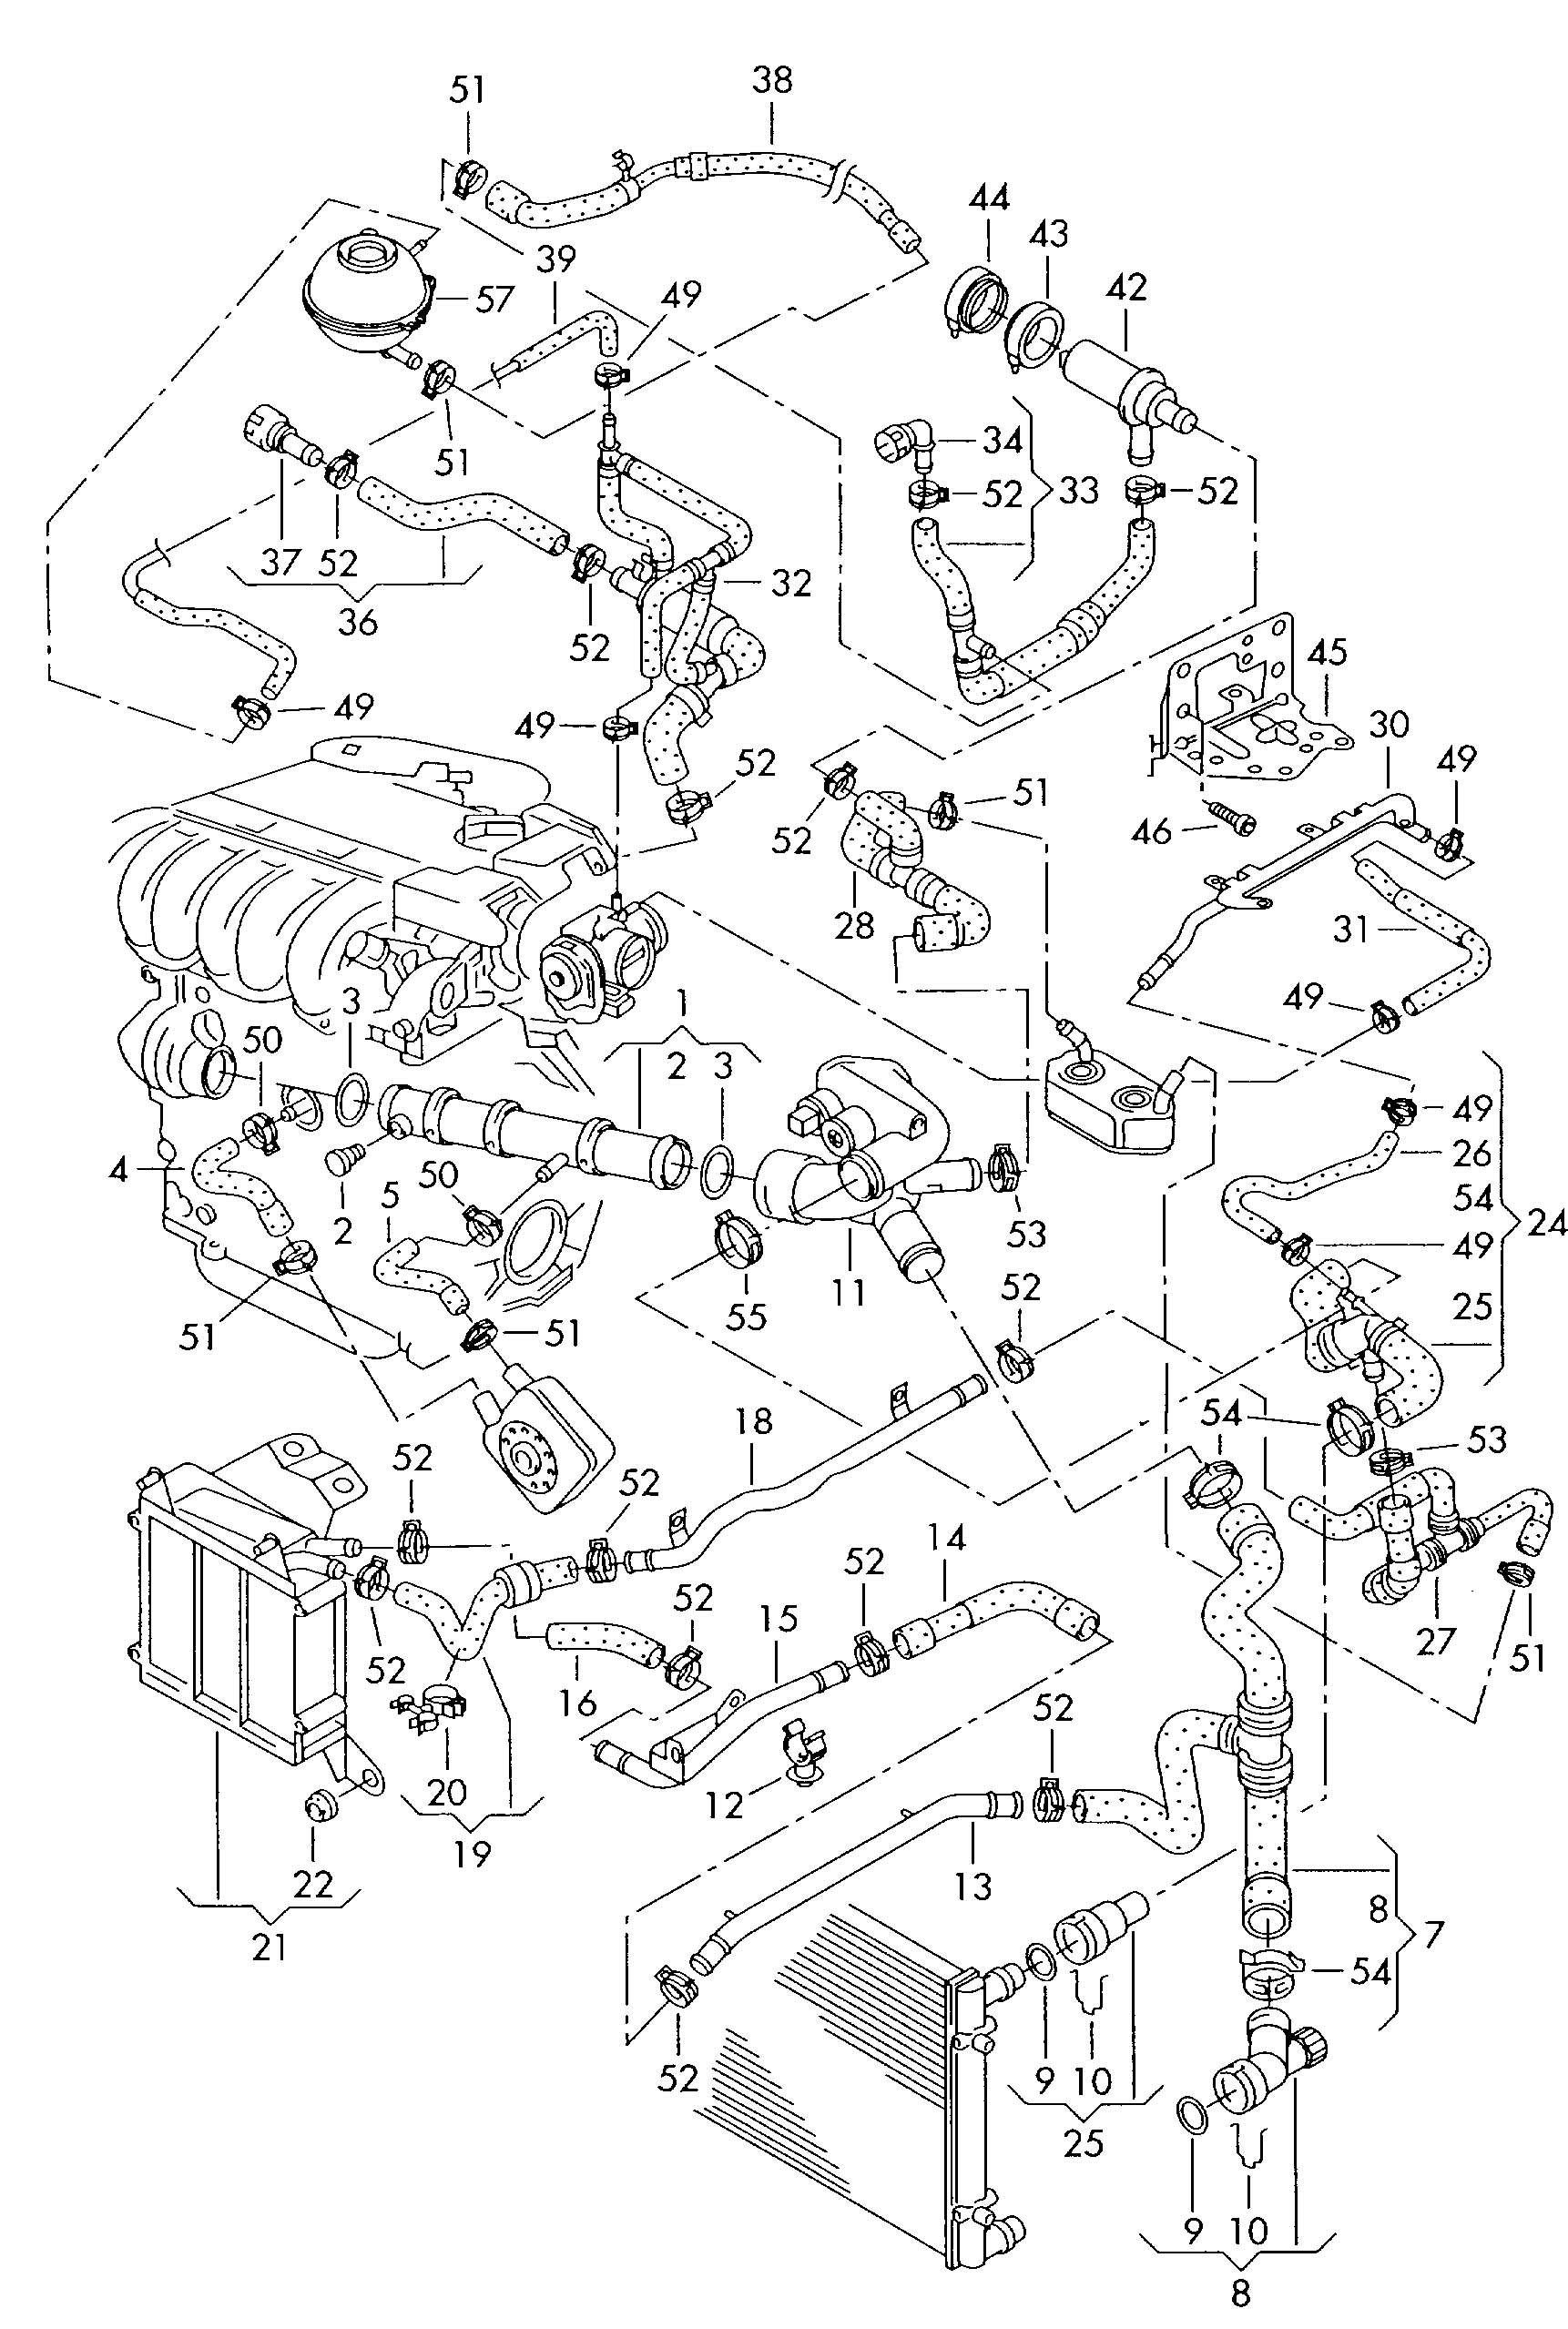 Jetta Hoses Diagram Automotive Wiring Diagrams Heating Zone Valve 2 0 Engine Schematic Name Heater Core Hose 03